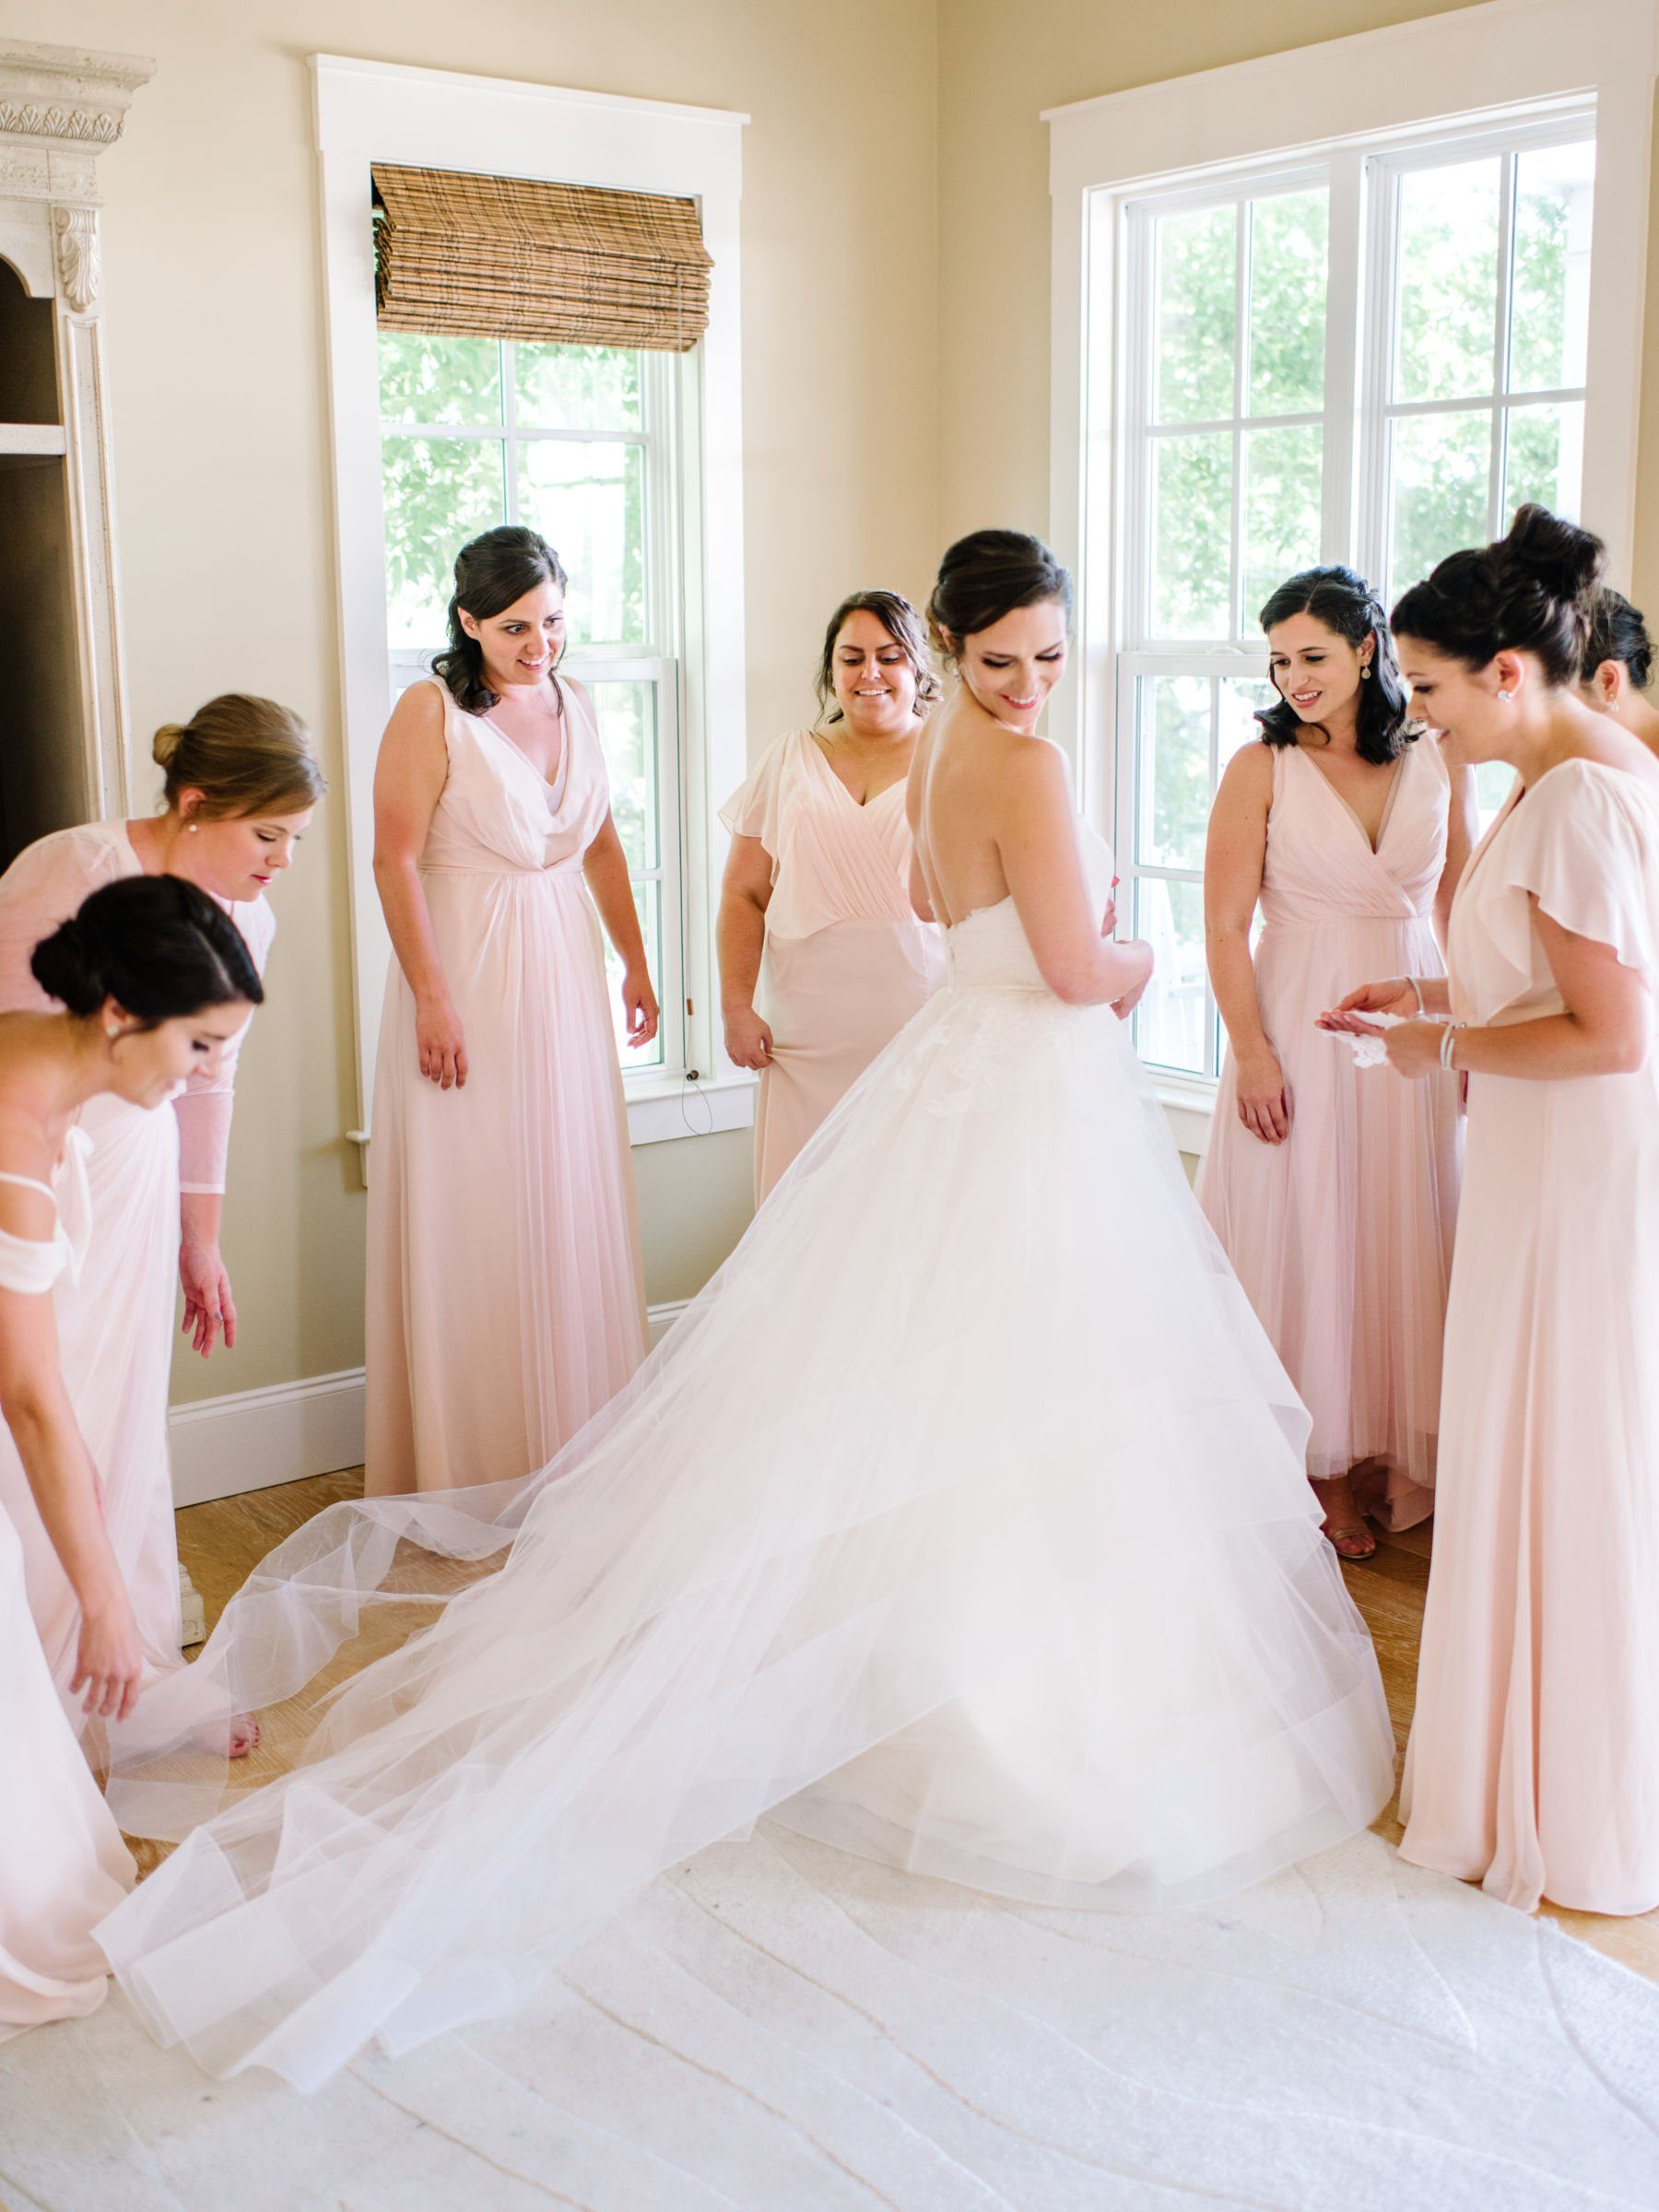 stunning bride surrounded by bridesmaids wearing blush gowns